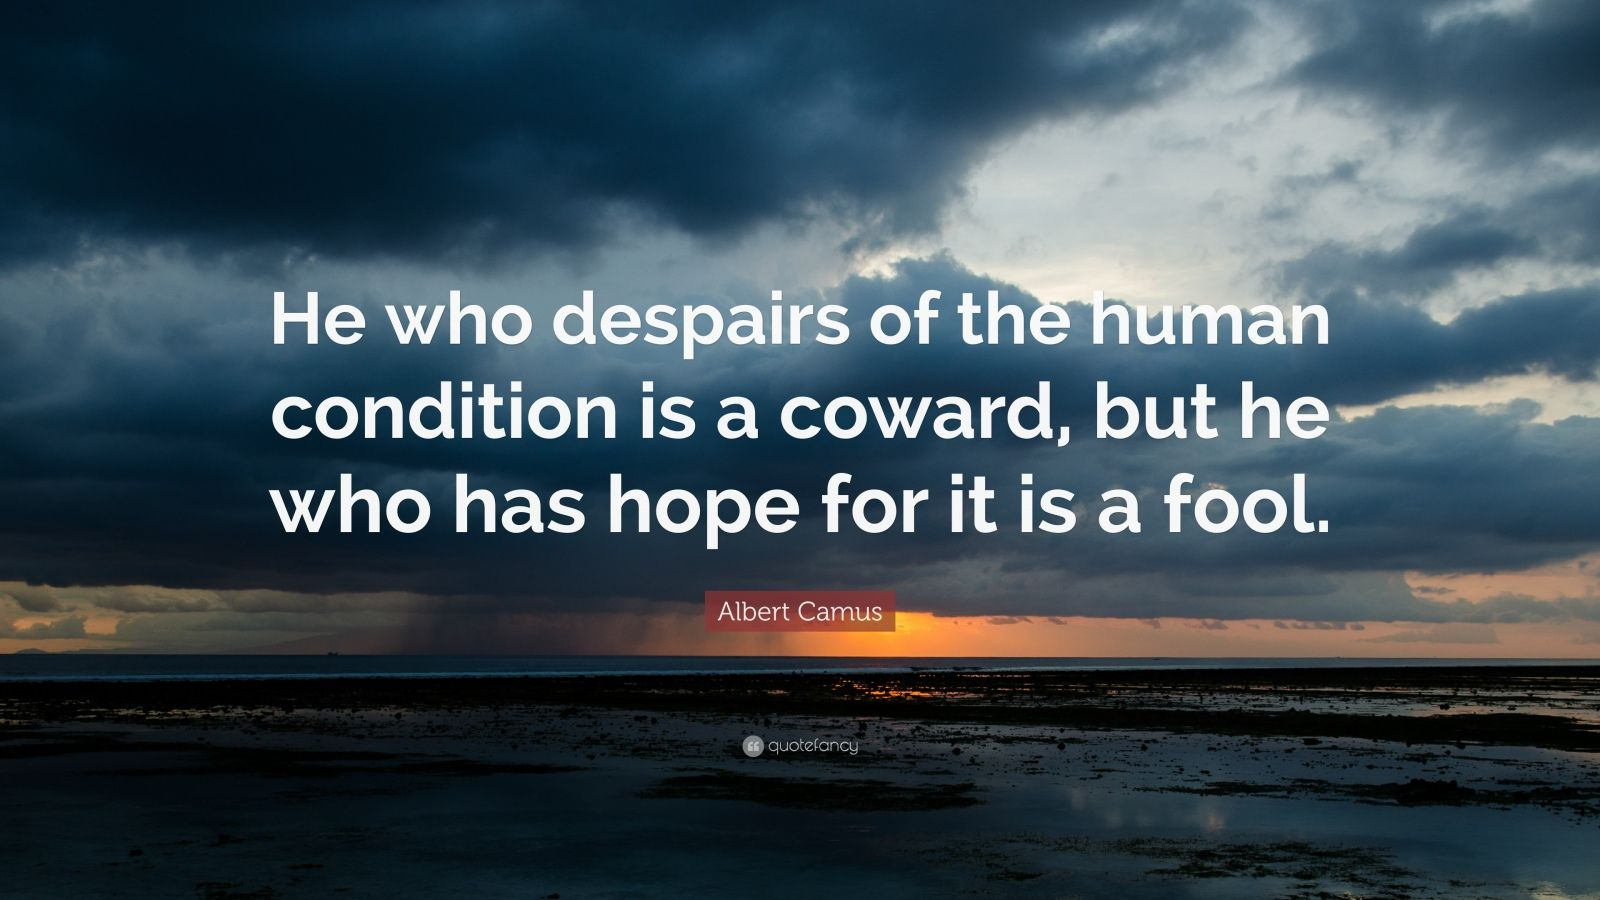 """Albert Camus Quote: """"He who despairs of the human condition is a coward, but he who has hope for it is a fool."""""""